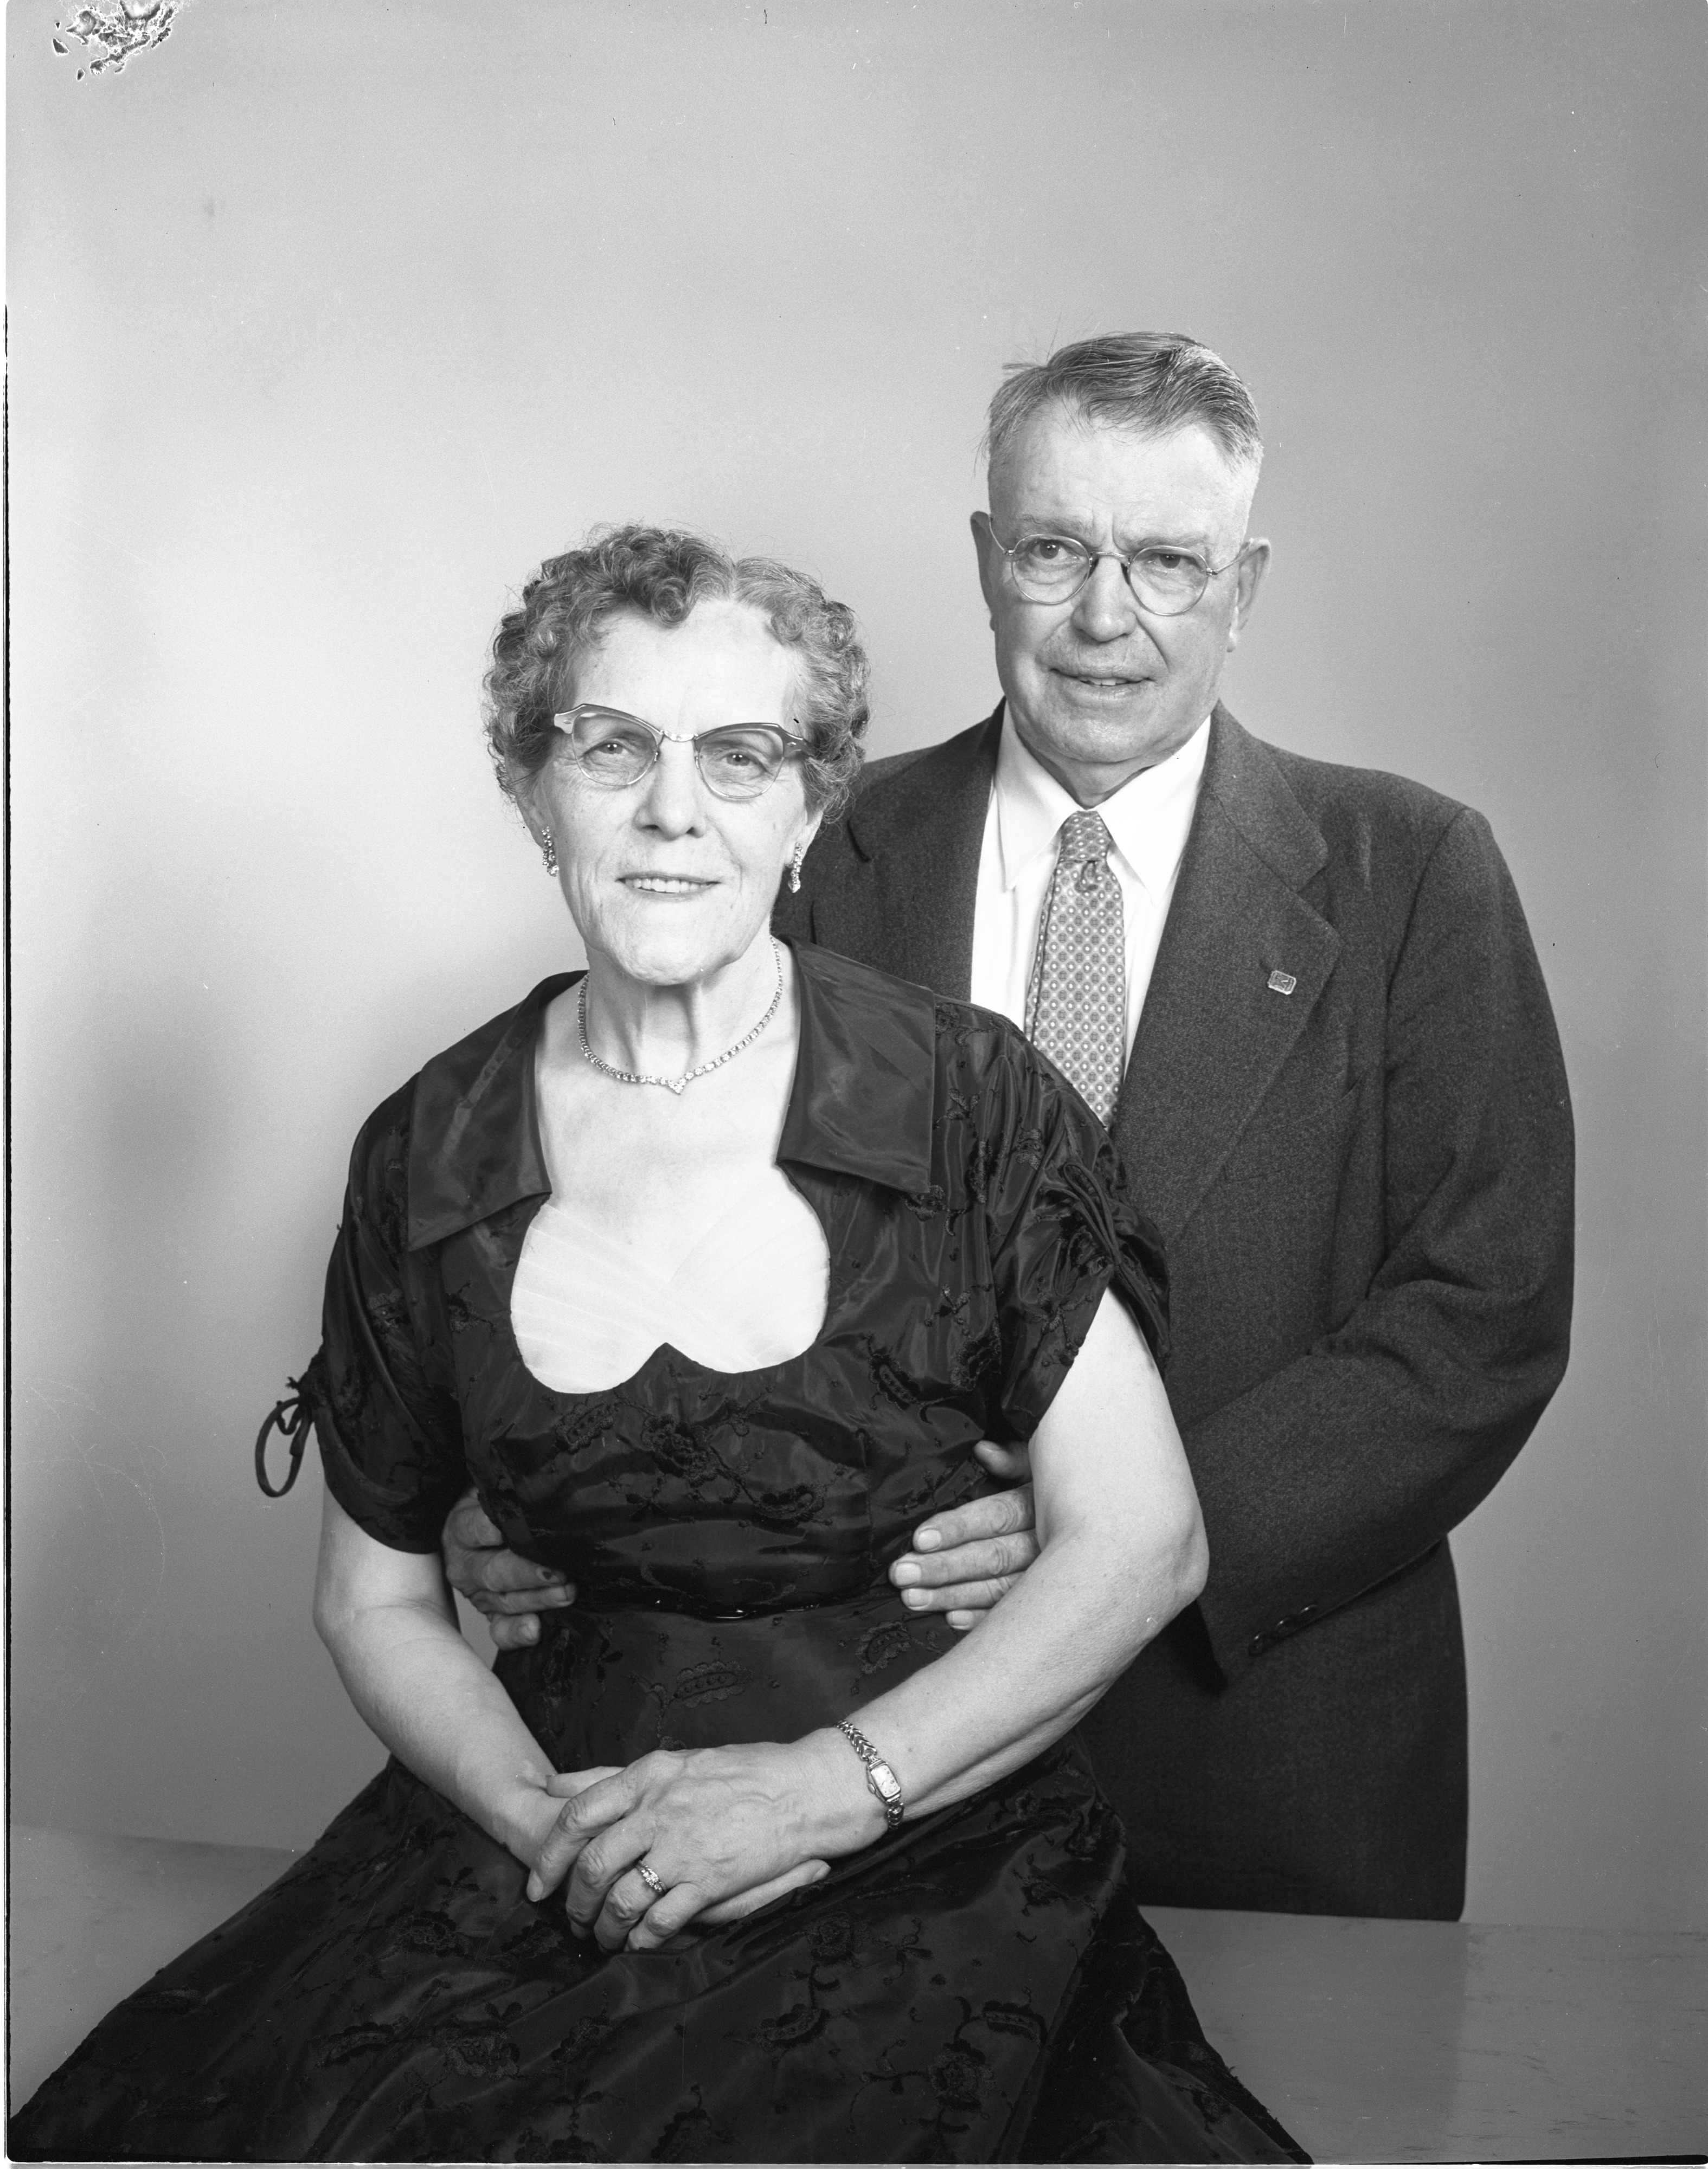 Betty & John Wrathell - Married 50 Years, June 1956 image